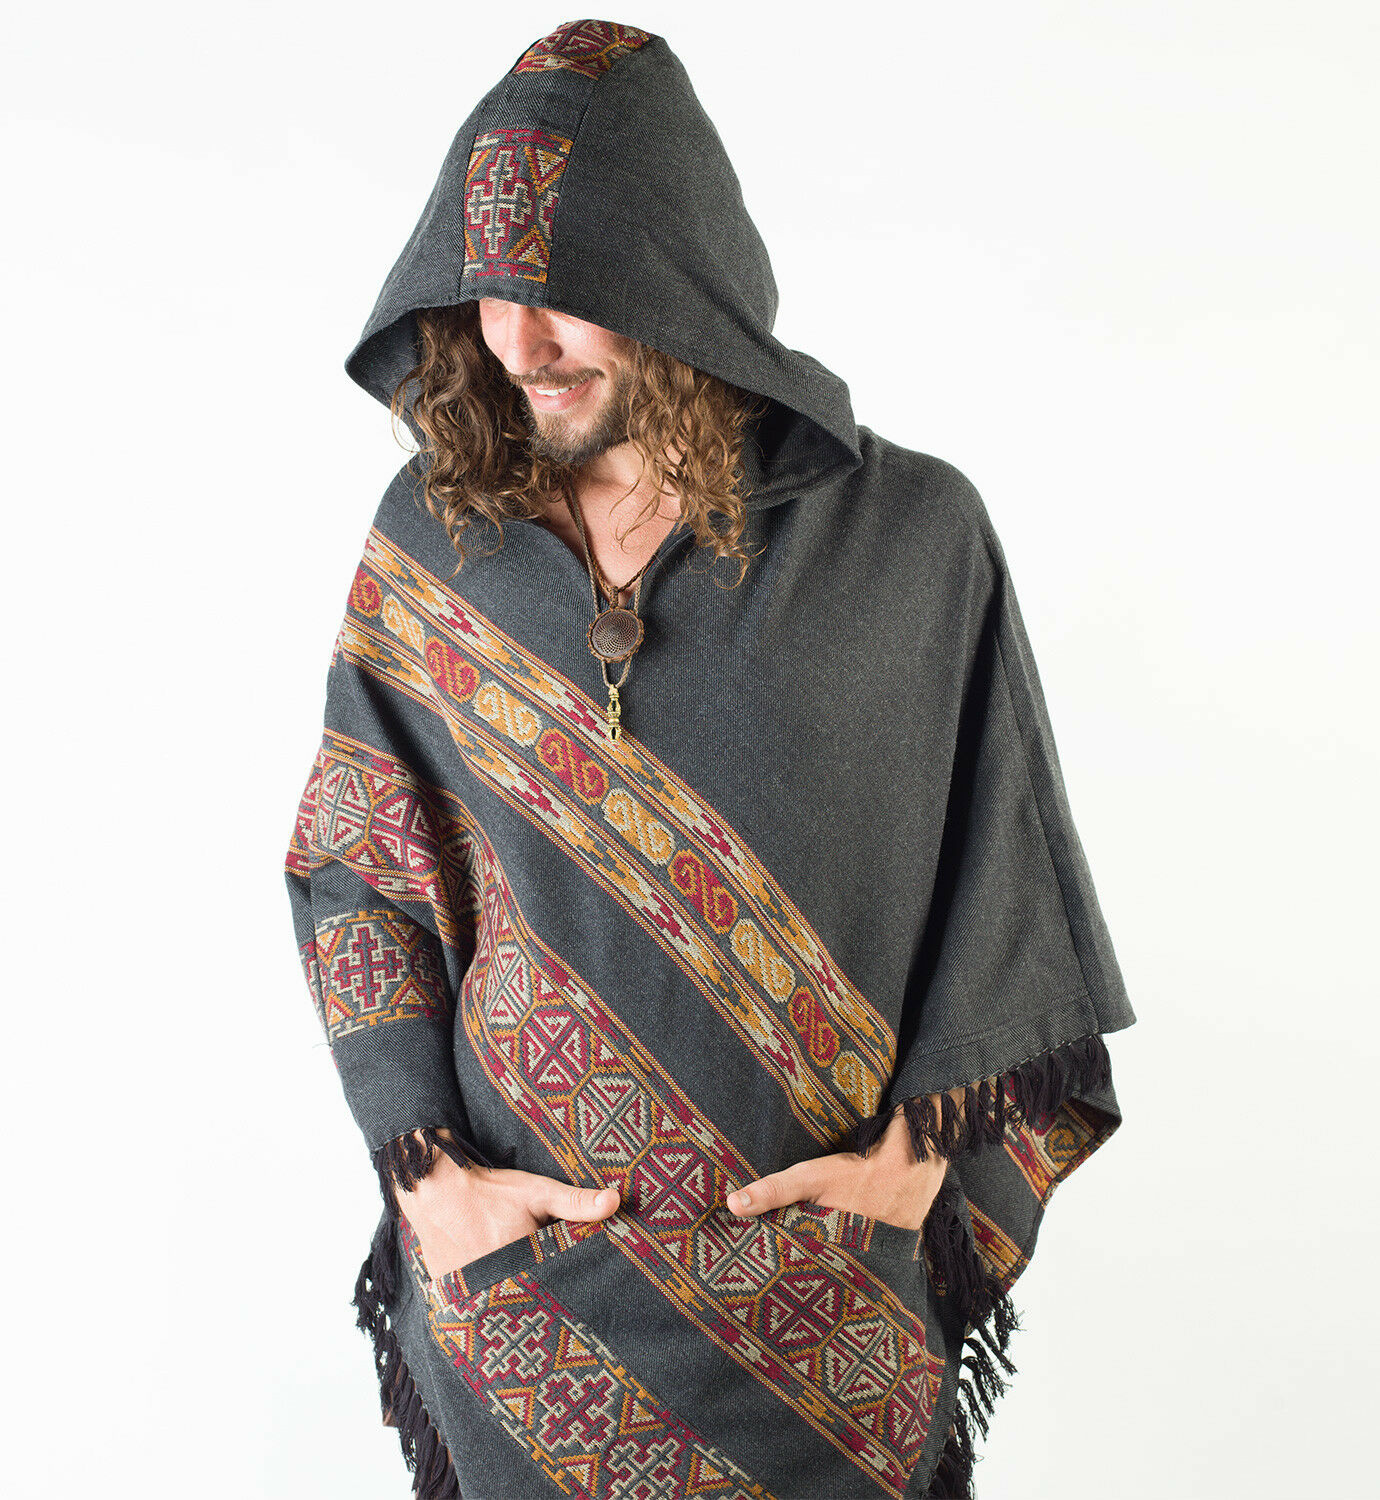 Handmade Poncho with Hoodie Dark Grey YAK Cashmere Wool, Earthy Tribal Pattern